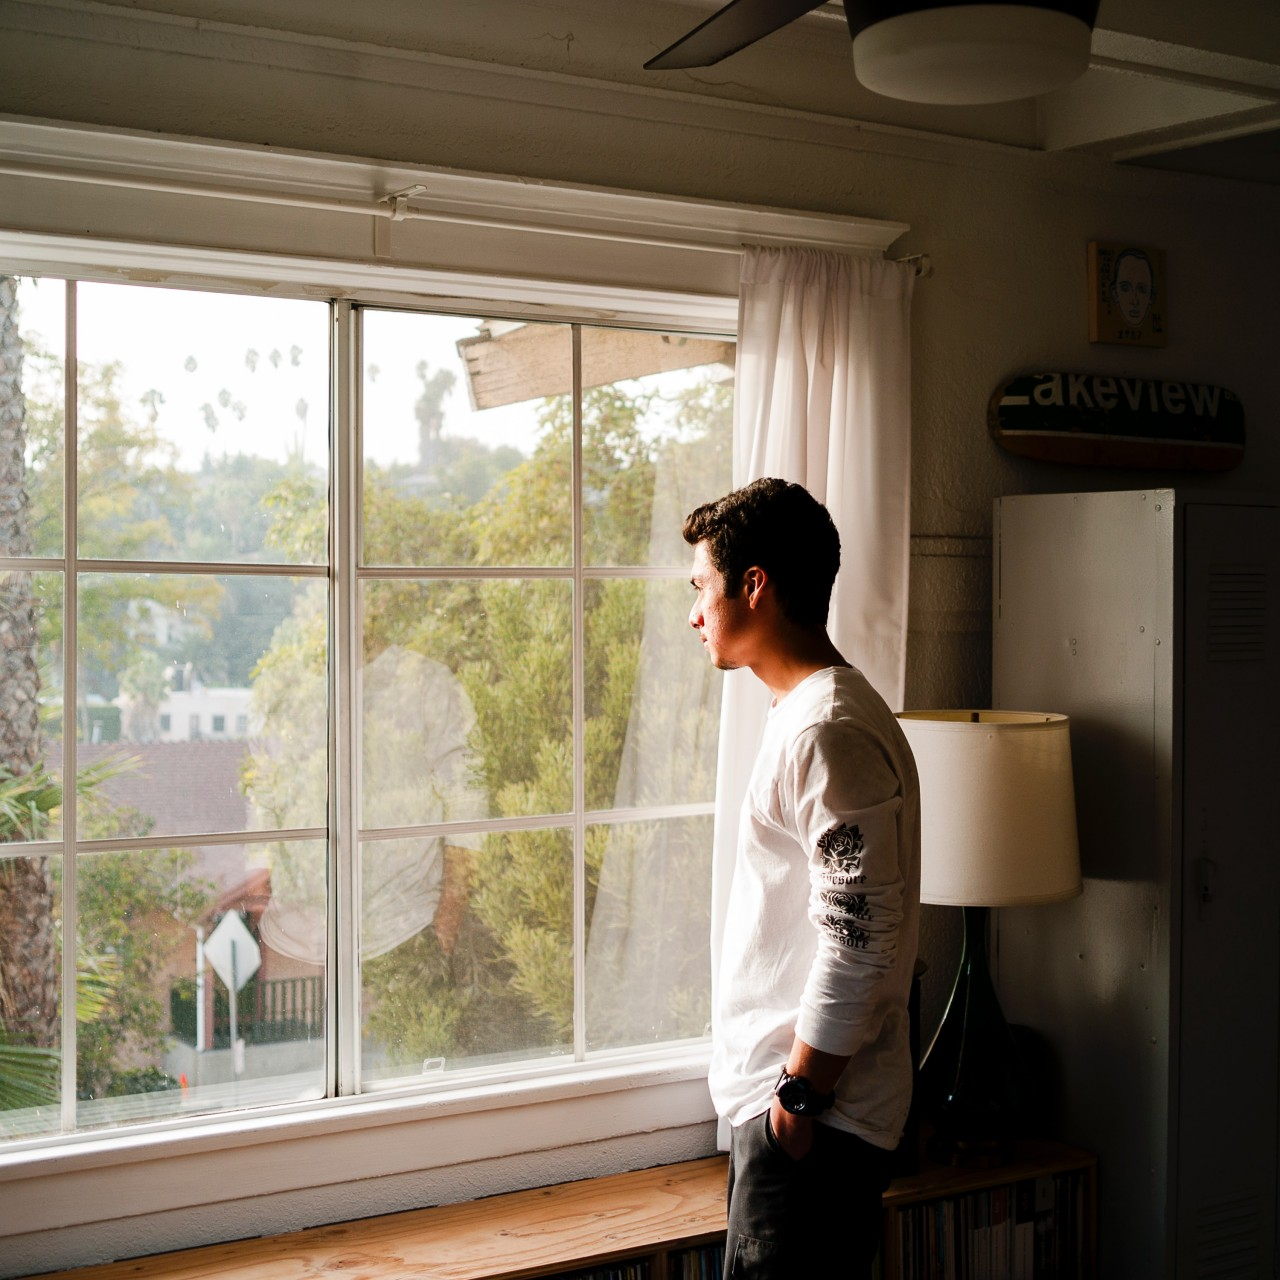 man with dark hair and white sweatshirt looking out of a window